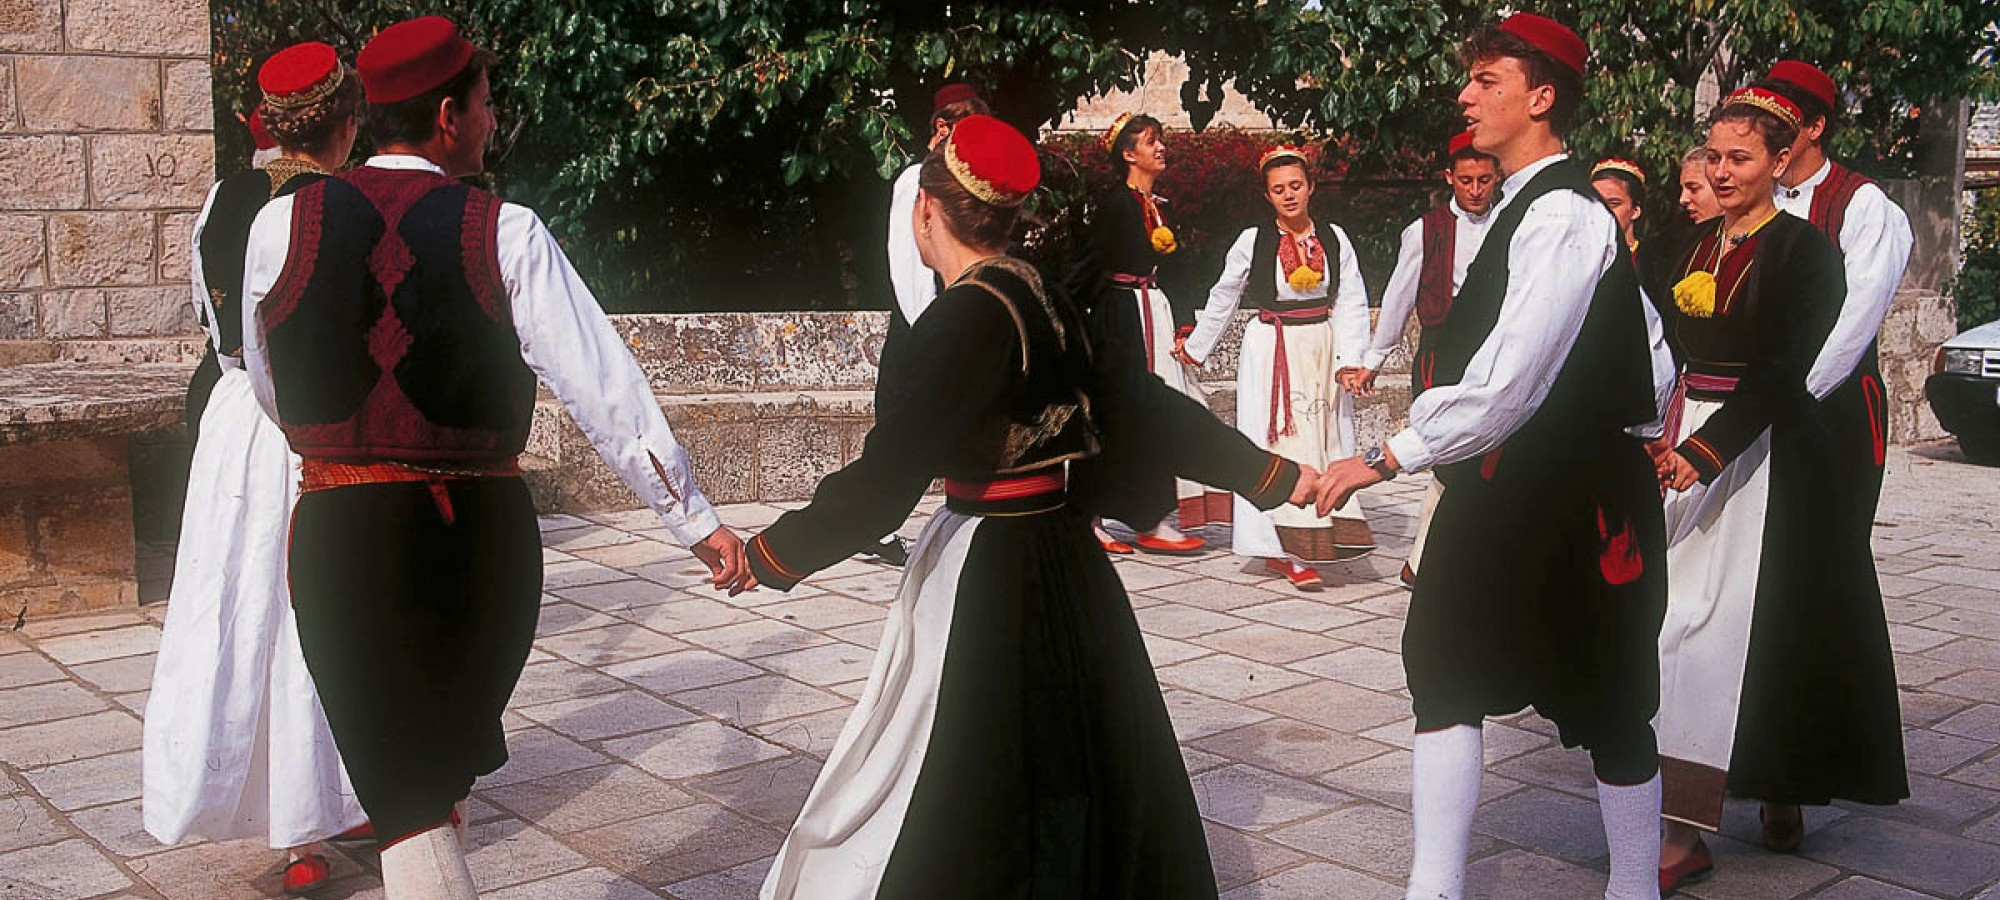 Konavle folk costume, Source: www.photonet.hr